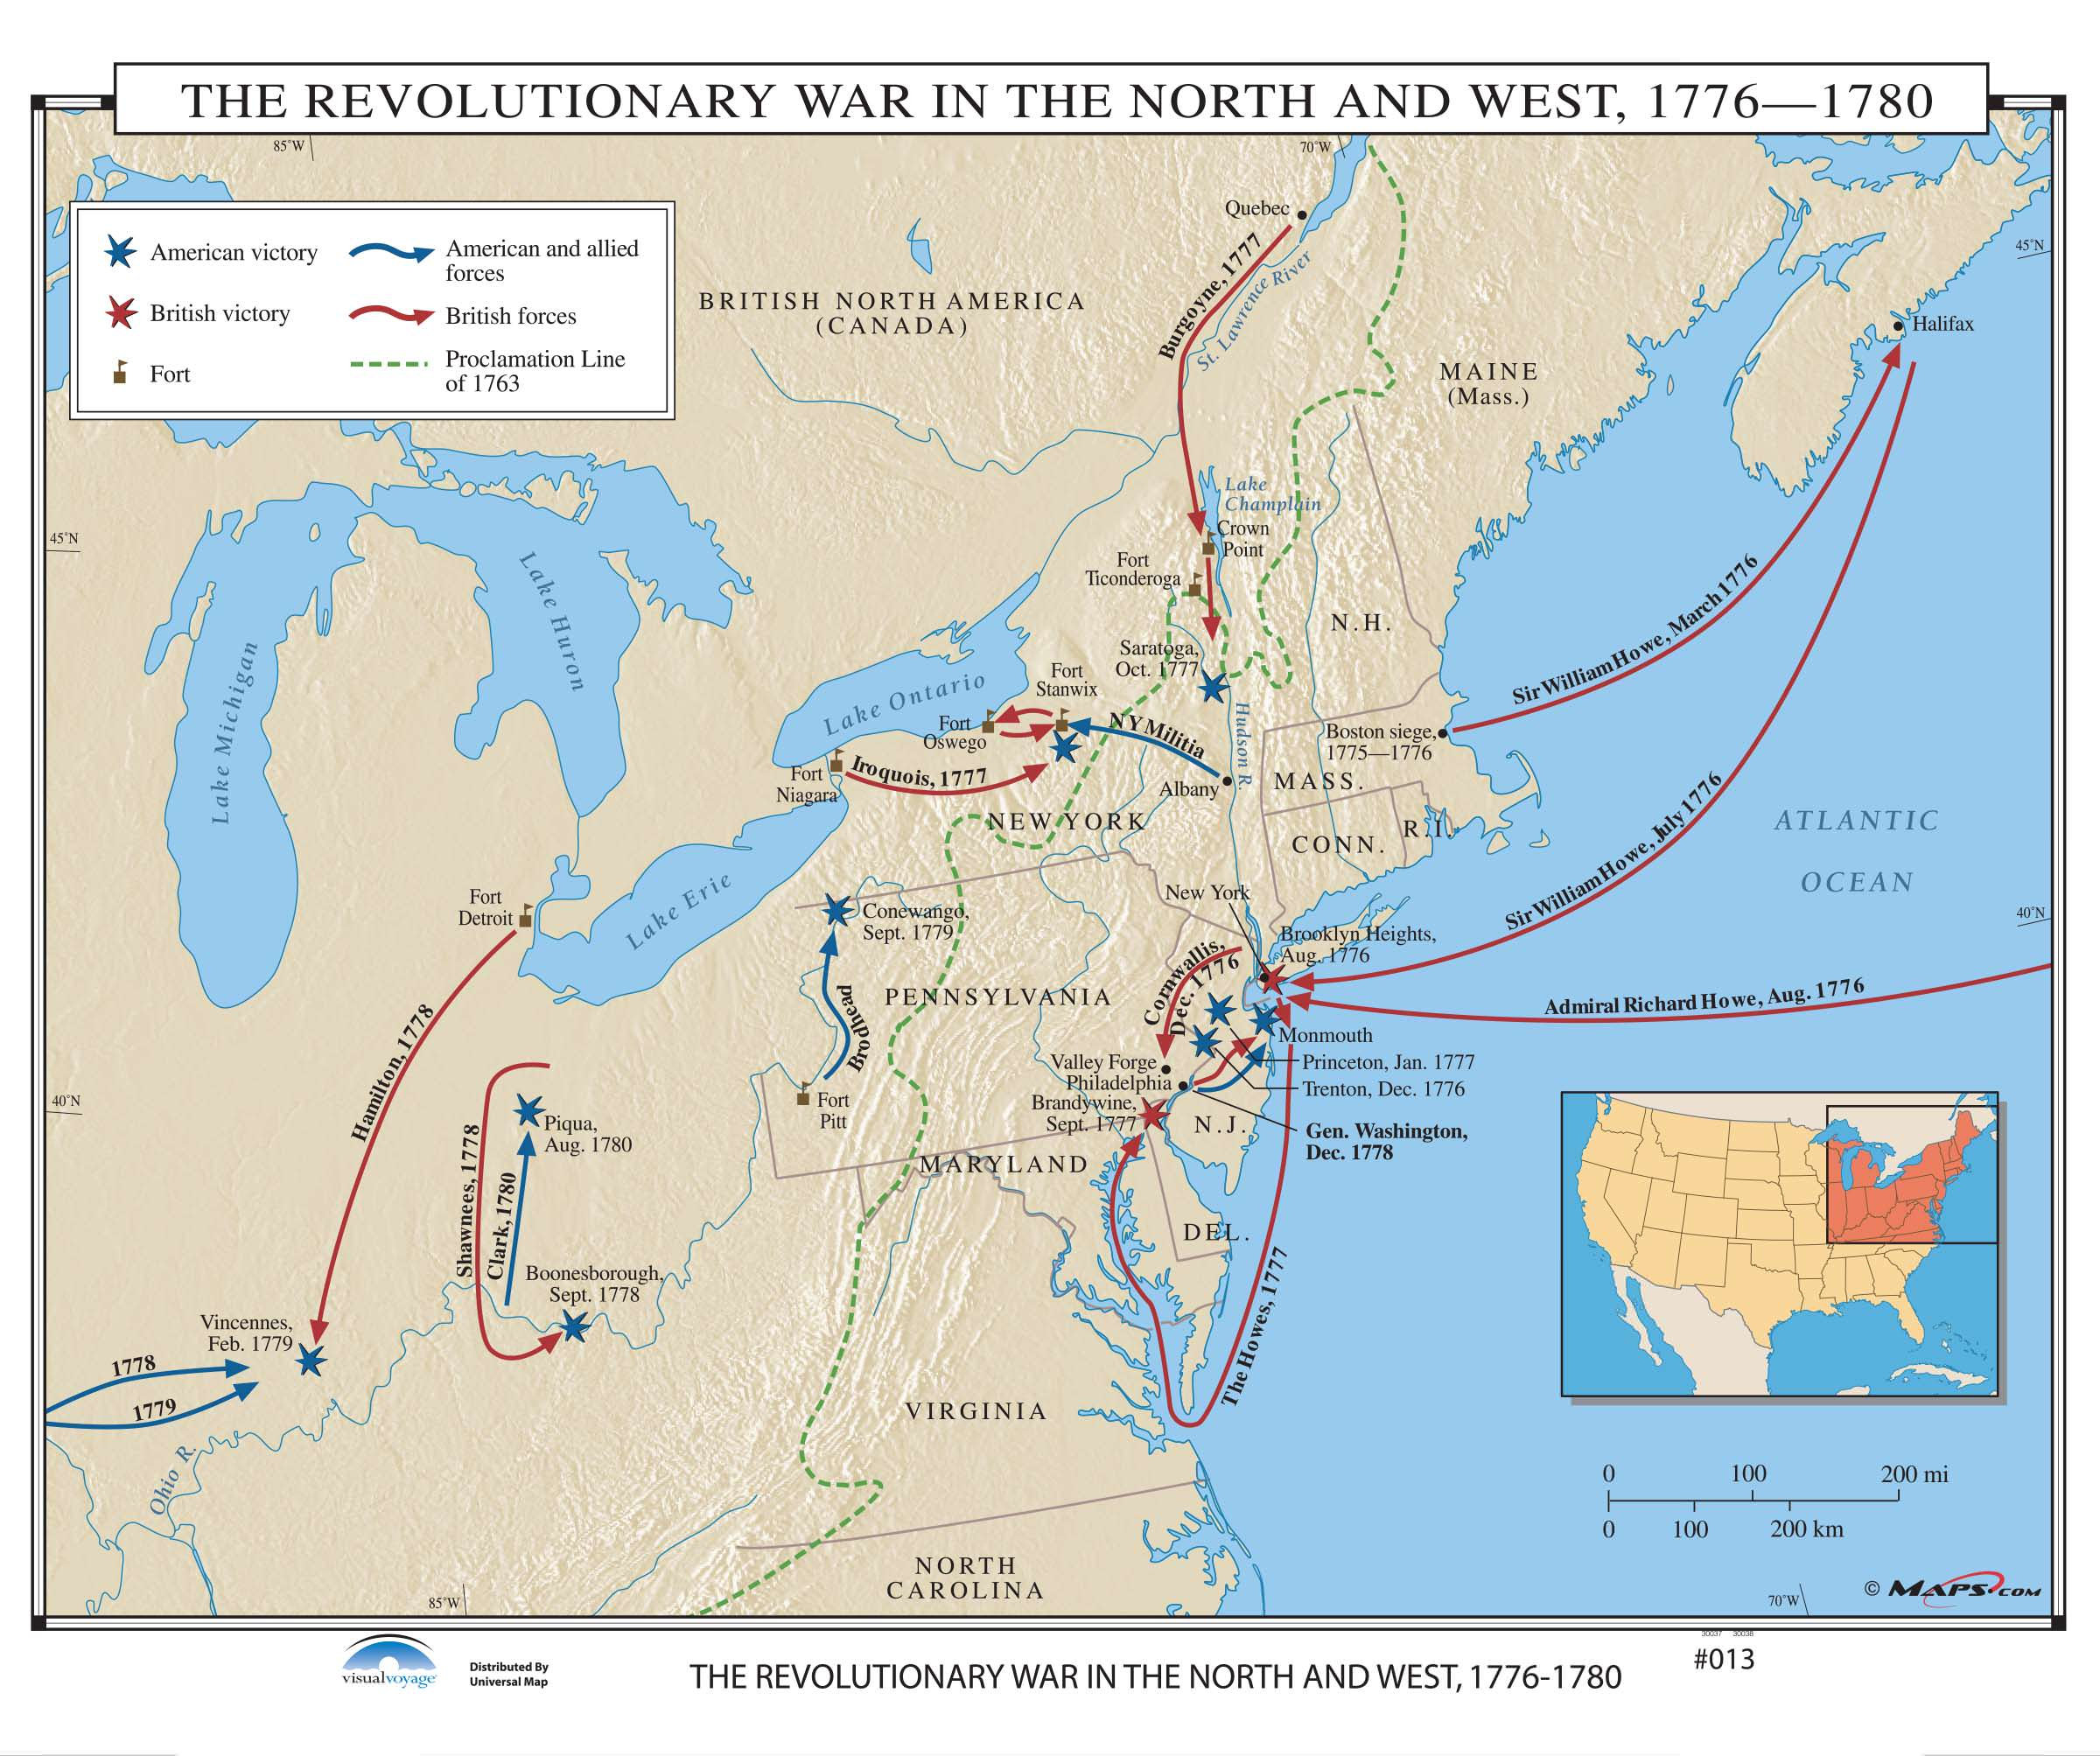 013 The Revolutionary War In The North West 1776 1780 Kappa Map